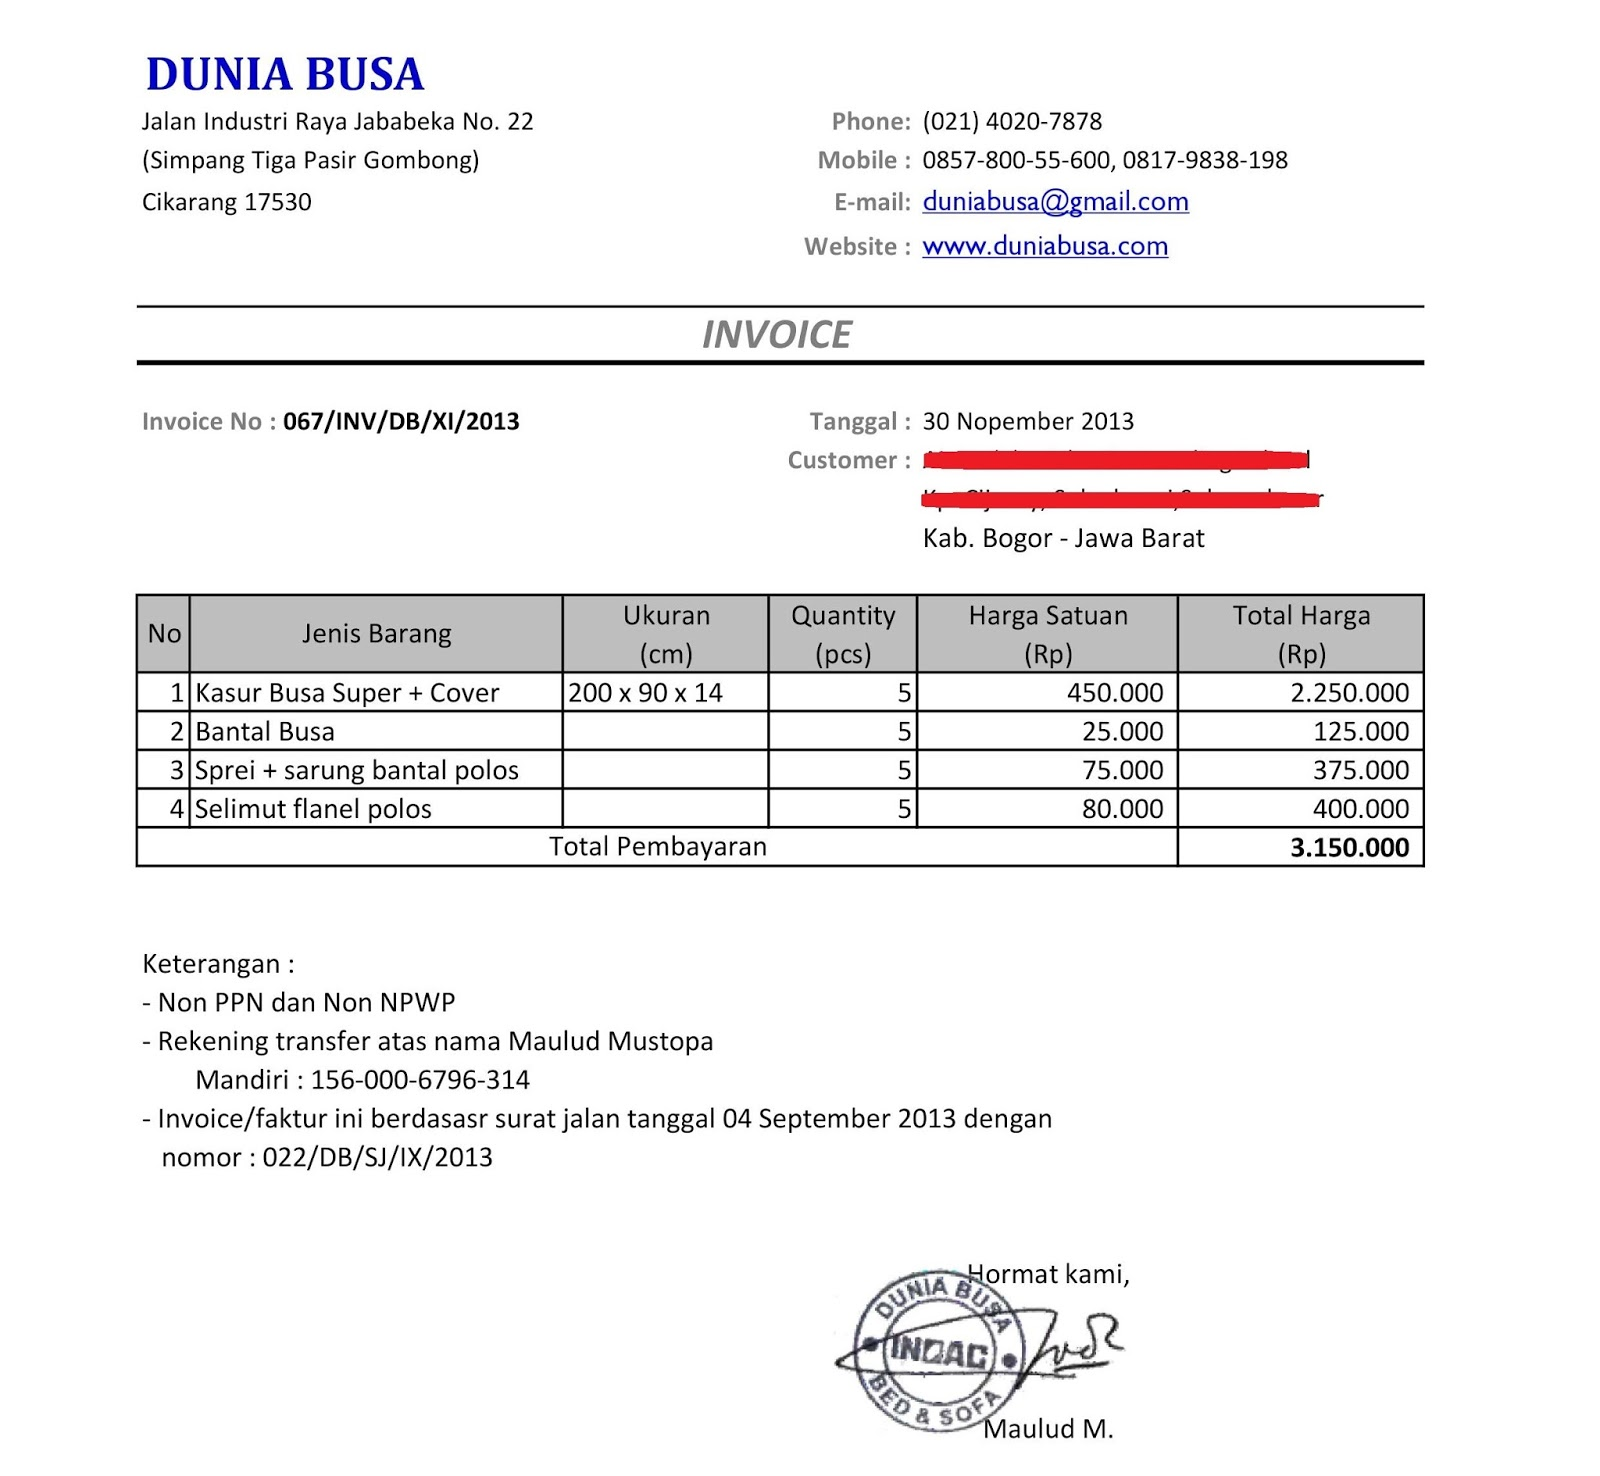 Ultrablogus  Outstanding Free Invoice Online  Create Invoice Online  Invoice Template  With Outstanding Contoh Format Invoice Atau Surat Tagihan  Brankas Arsip  Free Invoice Online With Astounding Samples Of Invoices For Payment Also What Is The Invoice Price On A New Car In Addition Invoice Finance Facility And Invoice Mailing Service As Well As How To Email Invoices From Quickbooks Additionally Invoice Template Generator From Sklepco With Ultrablogus  Outstanding Free Invoice Online  Create Invoice Online  Invoice Template  With Astounding Contoh Format Invoice Atau Surat Tagihan  Brankas Arsip  Free Invoice Online And Outstanding Samples Of Invoices For Payment Also What Is The Invoice Price On A New Car In Addition Invoice Finance Facility From Sklepco